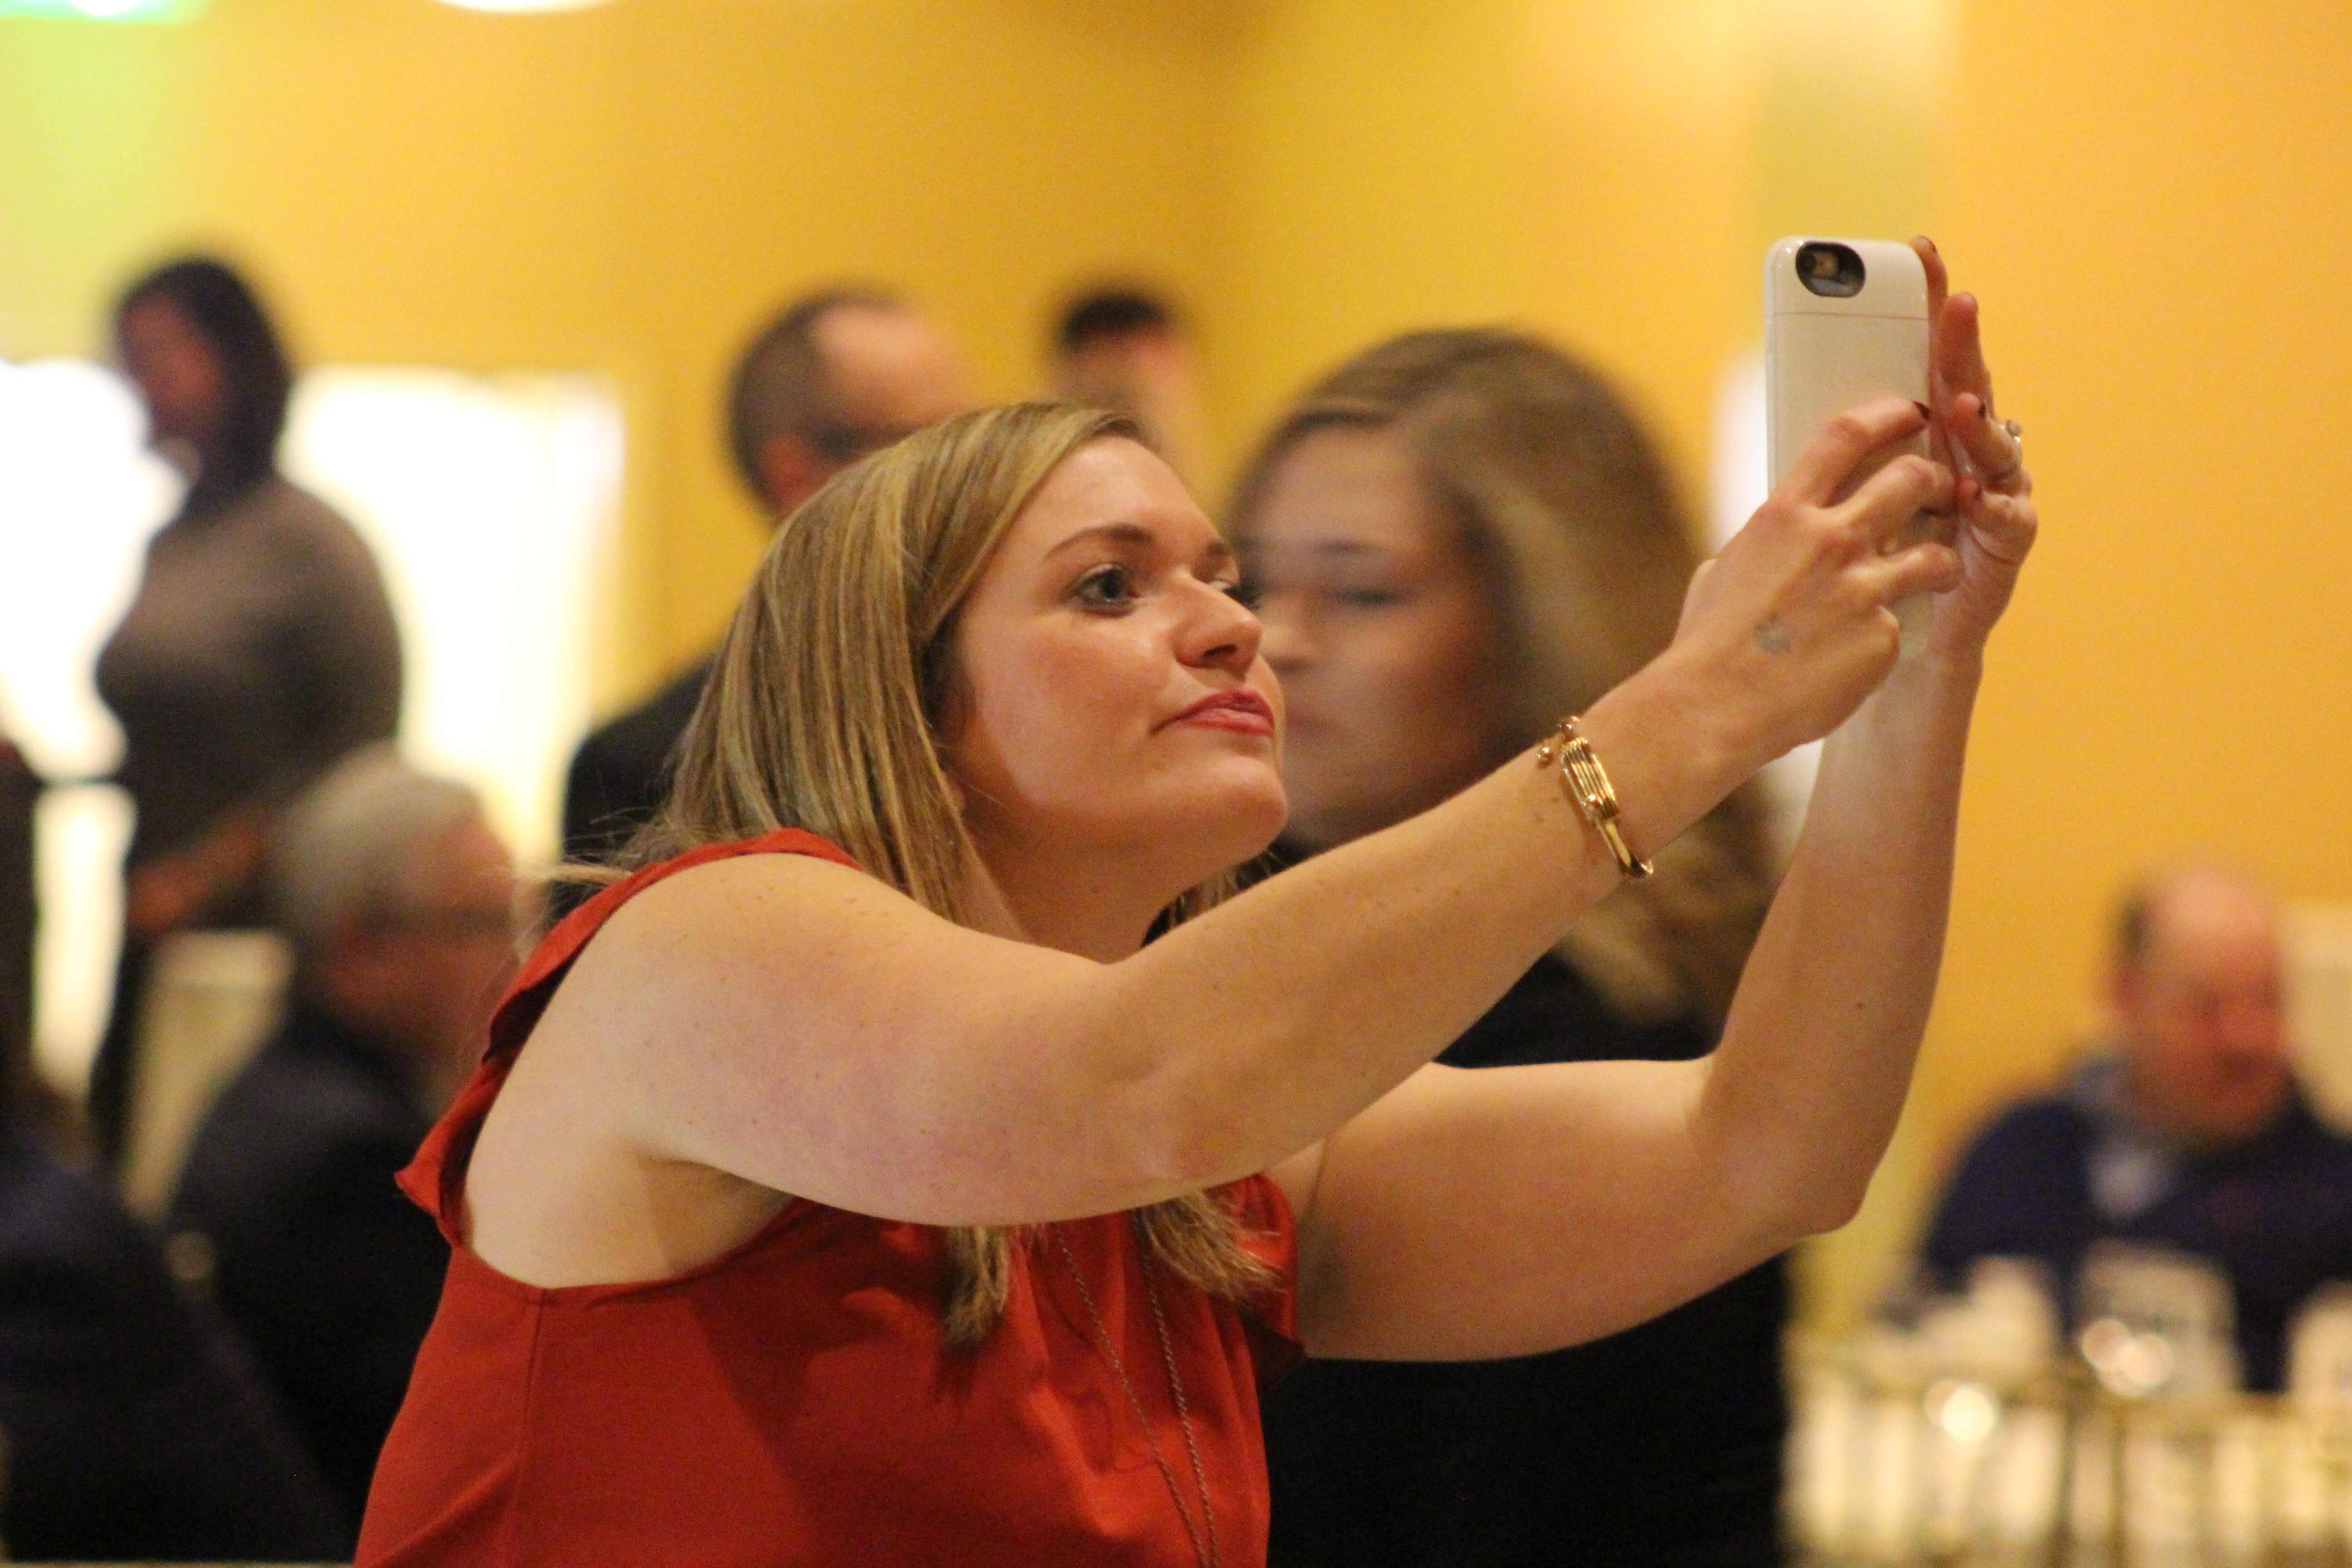 Christine Mori of the Douglas County Public Defender's Office snaps a photo before the start of the Barristers' Club Christmas show at the Paxton Ballroom, 1403 Farnam St., on Dec. 12, 2019. (Photo by Scott Stewart)